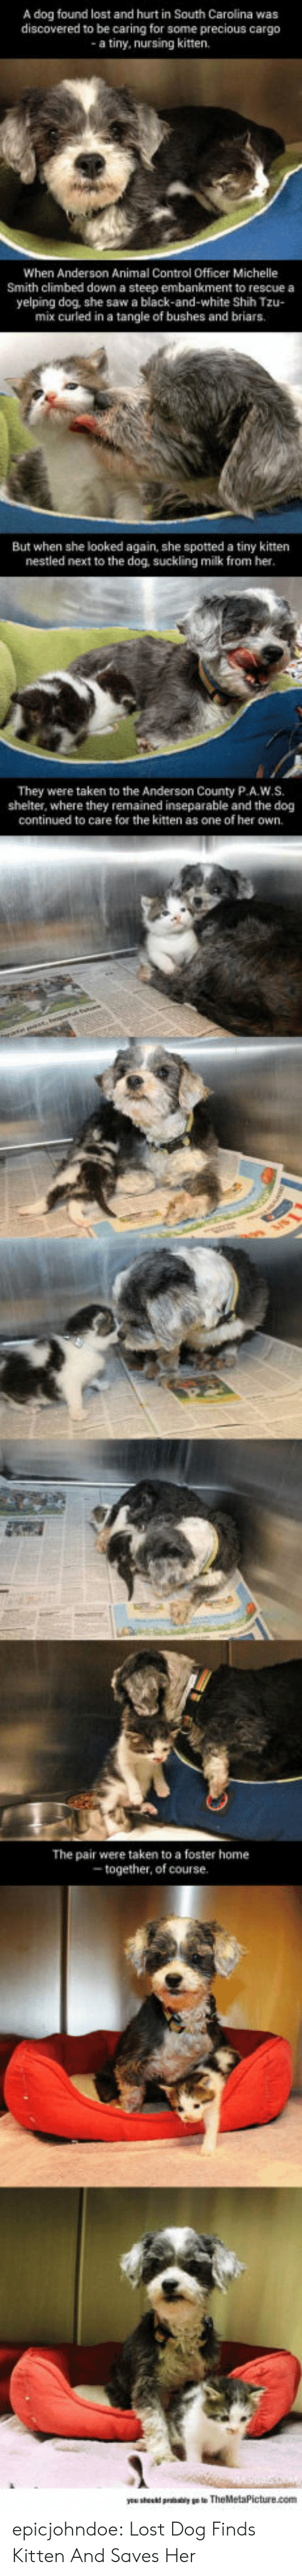 Precious, Saw, and Taken: A dog found lost and hurt in South Carolina was  discovered to be caring for some precious cargo  a tiny, nursing kitten.  When Anderson Animal Control Officer Michelle  Smith climbed down a steep embankment to rescue a  yelping dog, she saw a black-and-white Shih Tzu-  mix curled in a tangle of bushes and briars.  But when she looked again, she spotted a tiny kitten  nestled next to the dog, suckling milk from her  They were taken to the Anderson County P.A.W.S.  shelter, where they remained inseparable and the dog  continued to care for the kitten as one of her own.  The pair were taken to a foster home  together, of course epicjohndoe:  Lost Dog Finds Kitten And Saves Her